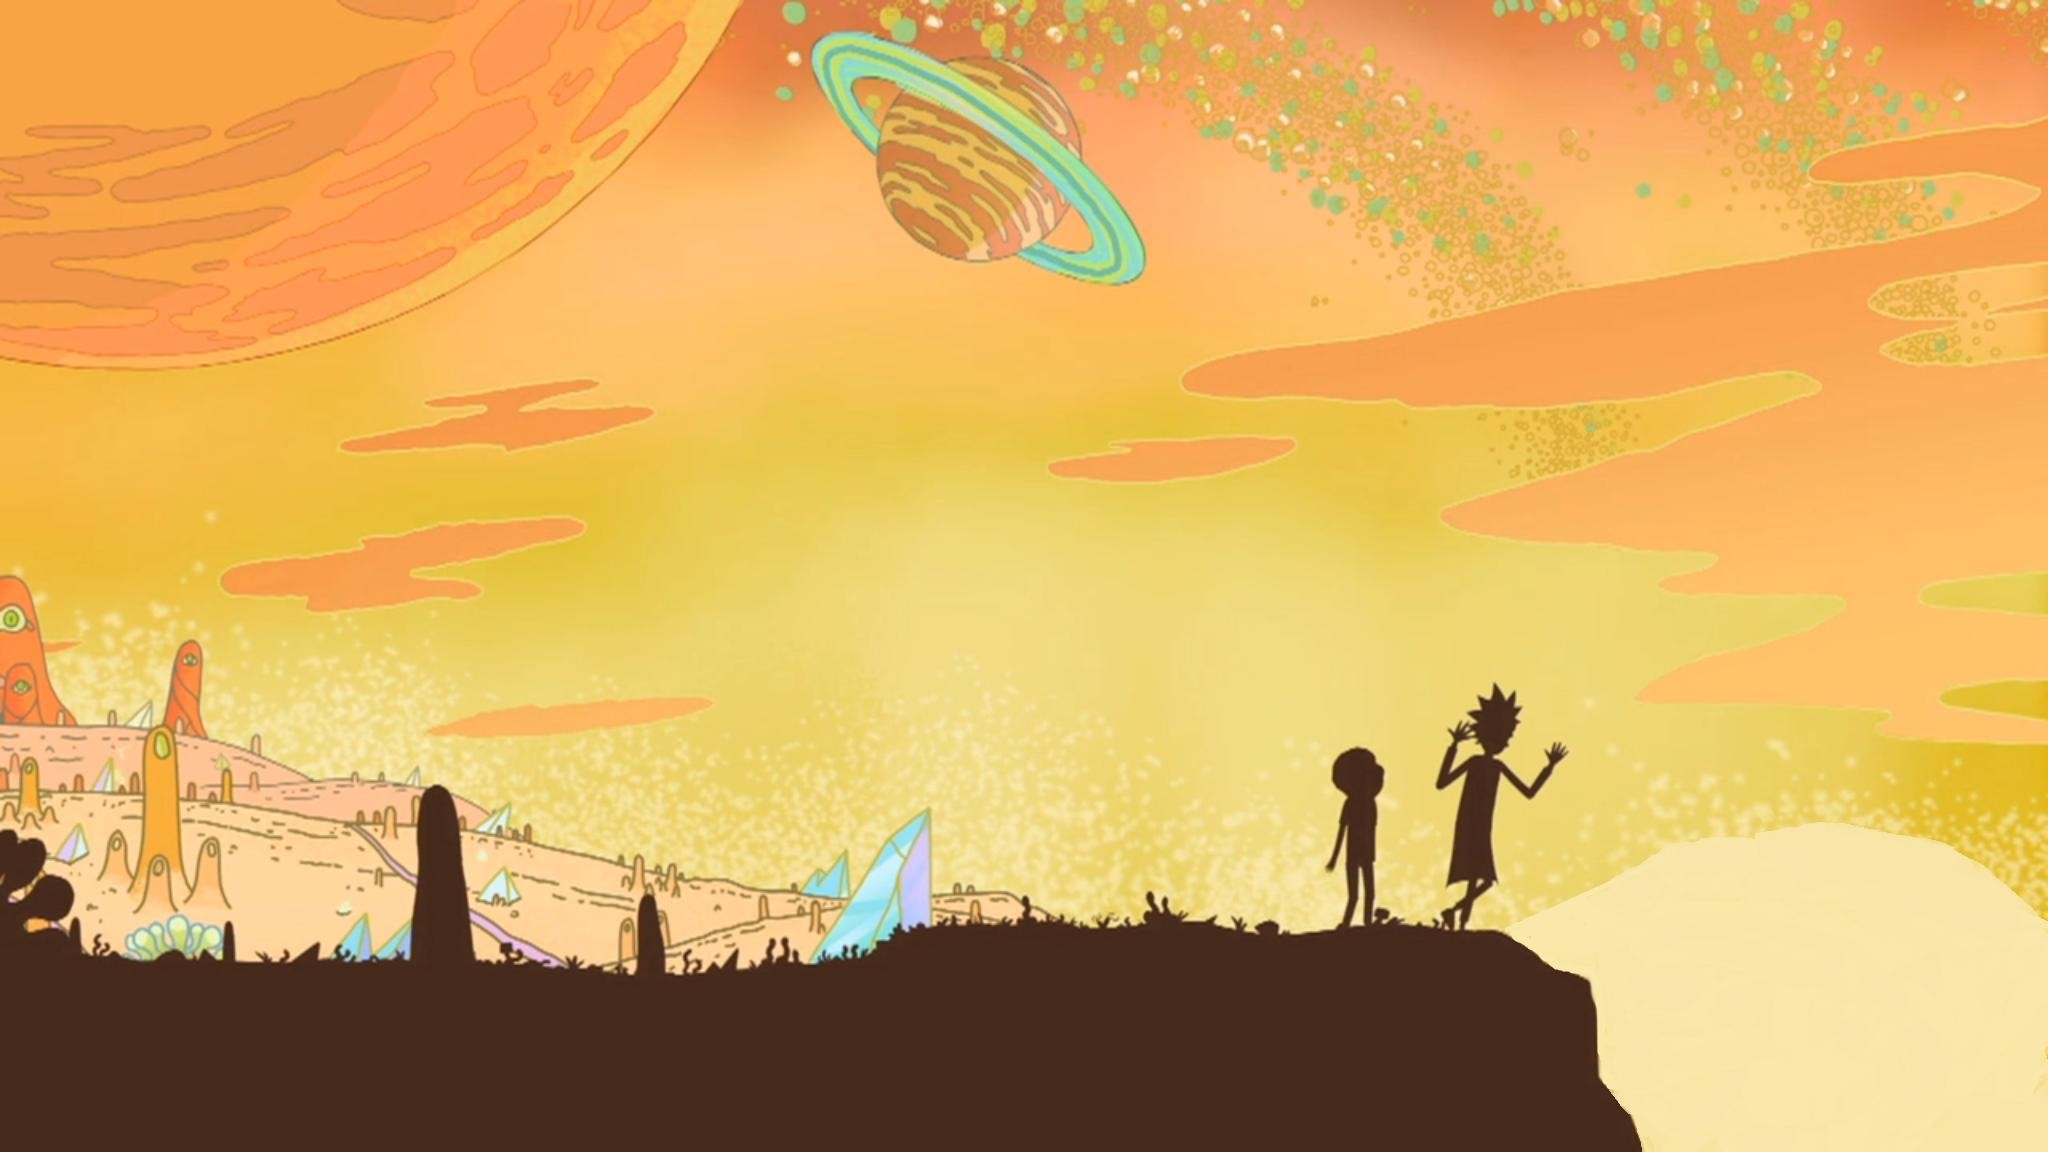 Rick And Morty Wallpaper 1080p ① Download Free Stunning High